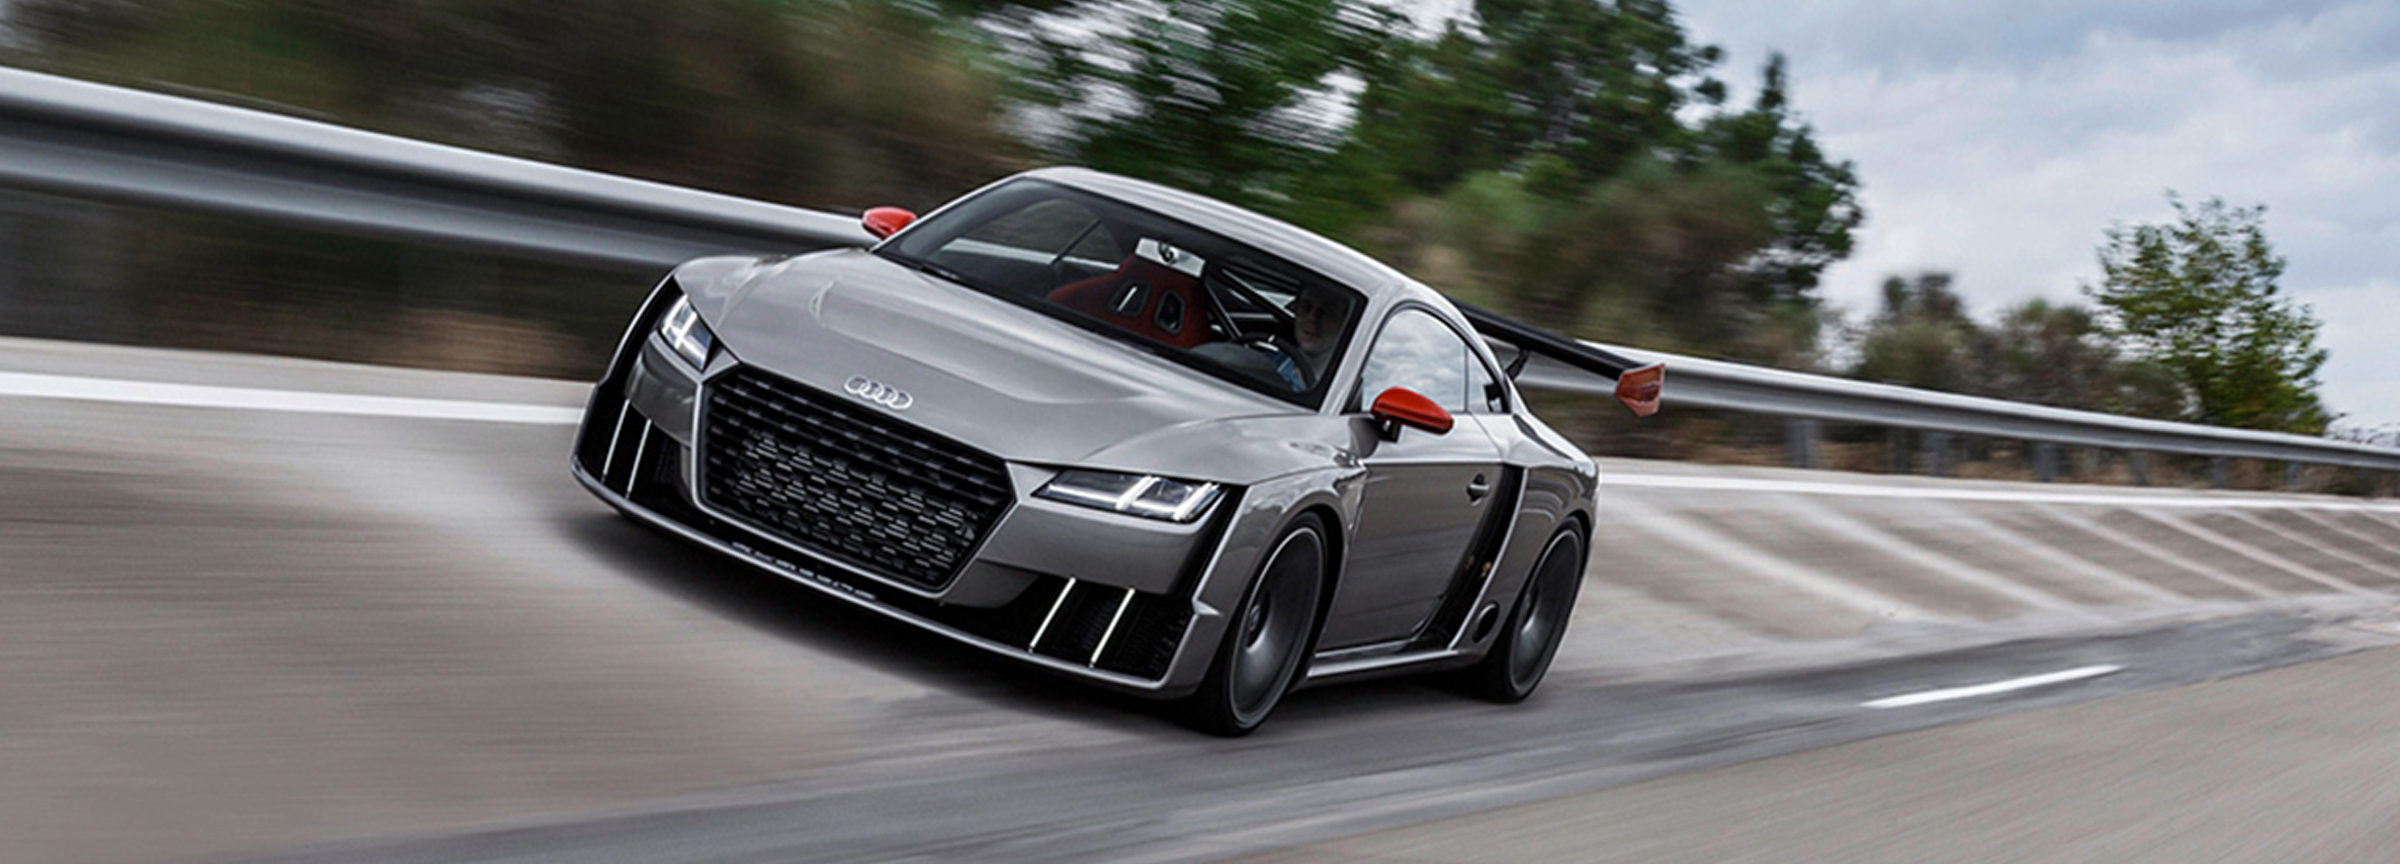 Audi TT Clubsport frontview Showcar Creative Wave